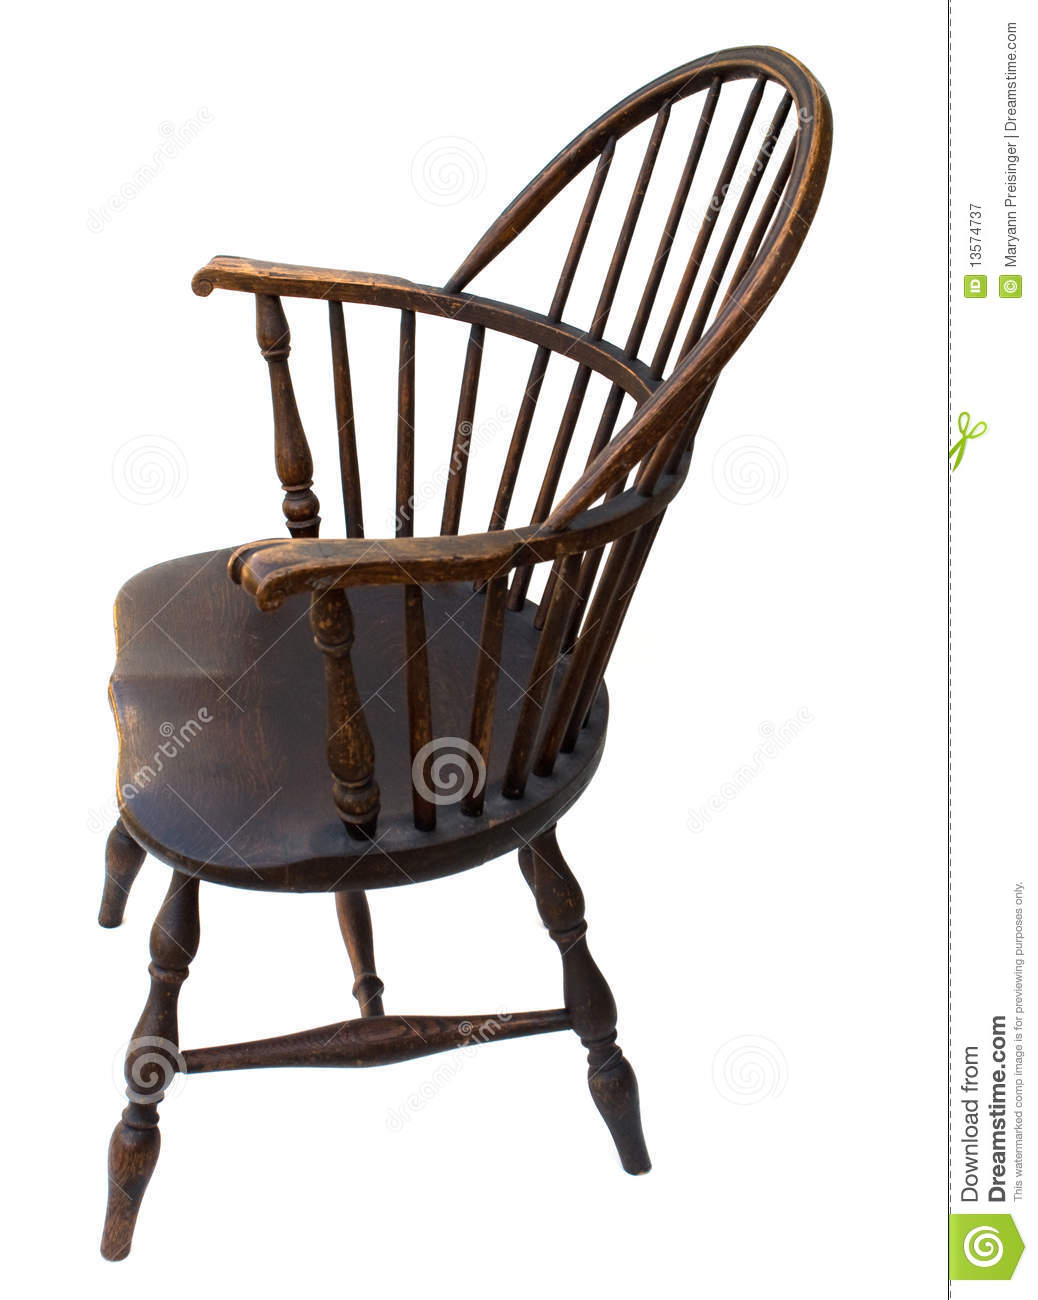 antique windsor chair identification swing side view isolated stock image